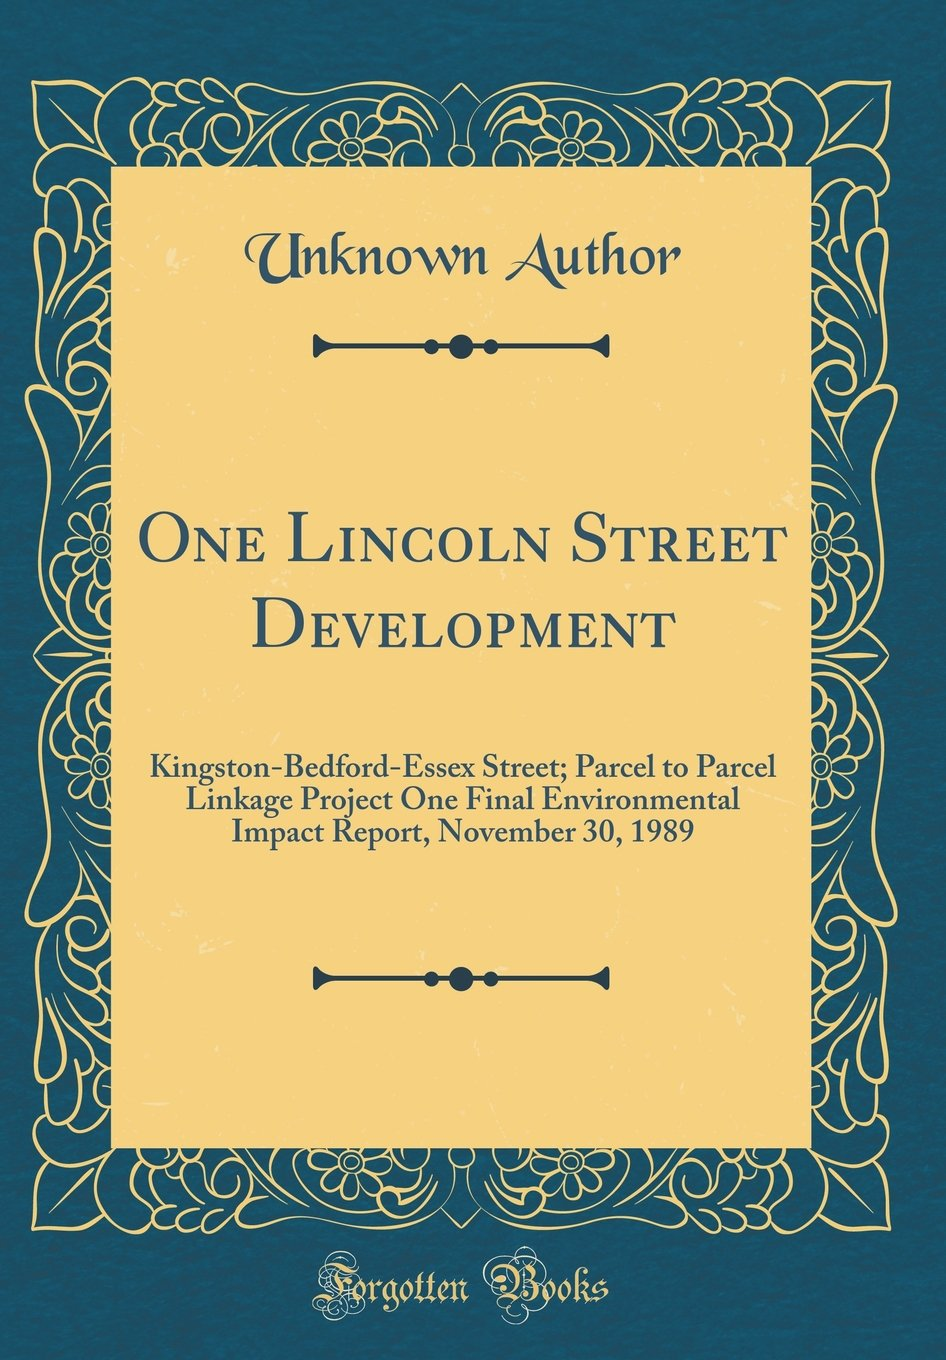 One Lincoln Street Development: Kingston-Bedford-Essex Street; Parcel to Parcel Linkage Project One Final Environmental Impact Report, November 30, 1989 (Classic Reprint) pdf